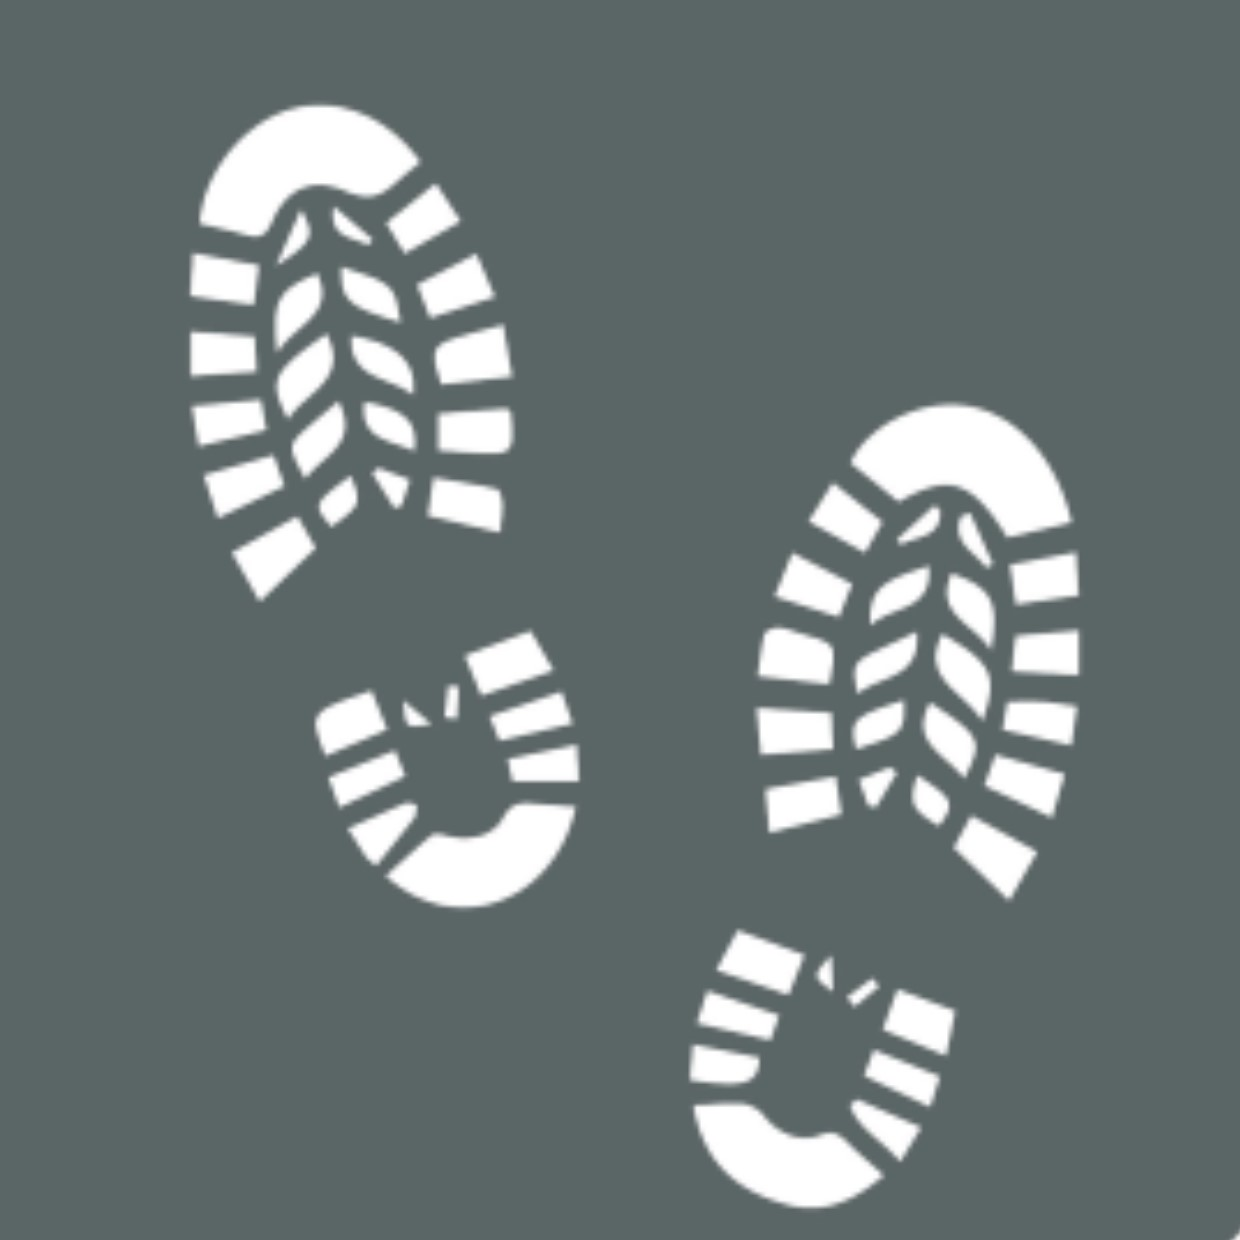 Icon or pictogram showing footprints, depicting guided bushwalking or gorge walking at Mandu Mandu gorge and Yardie Creek in Cape Range National Park